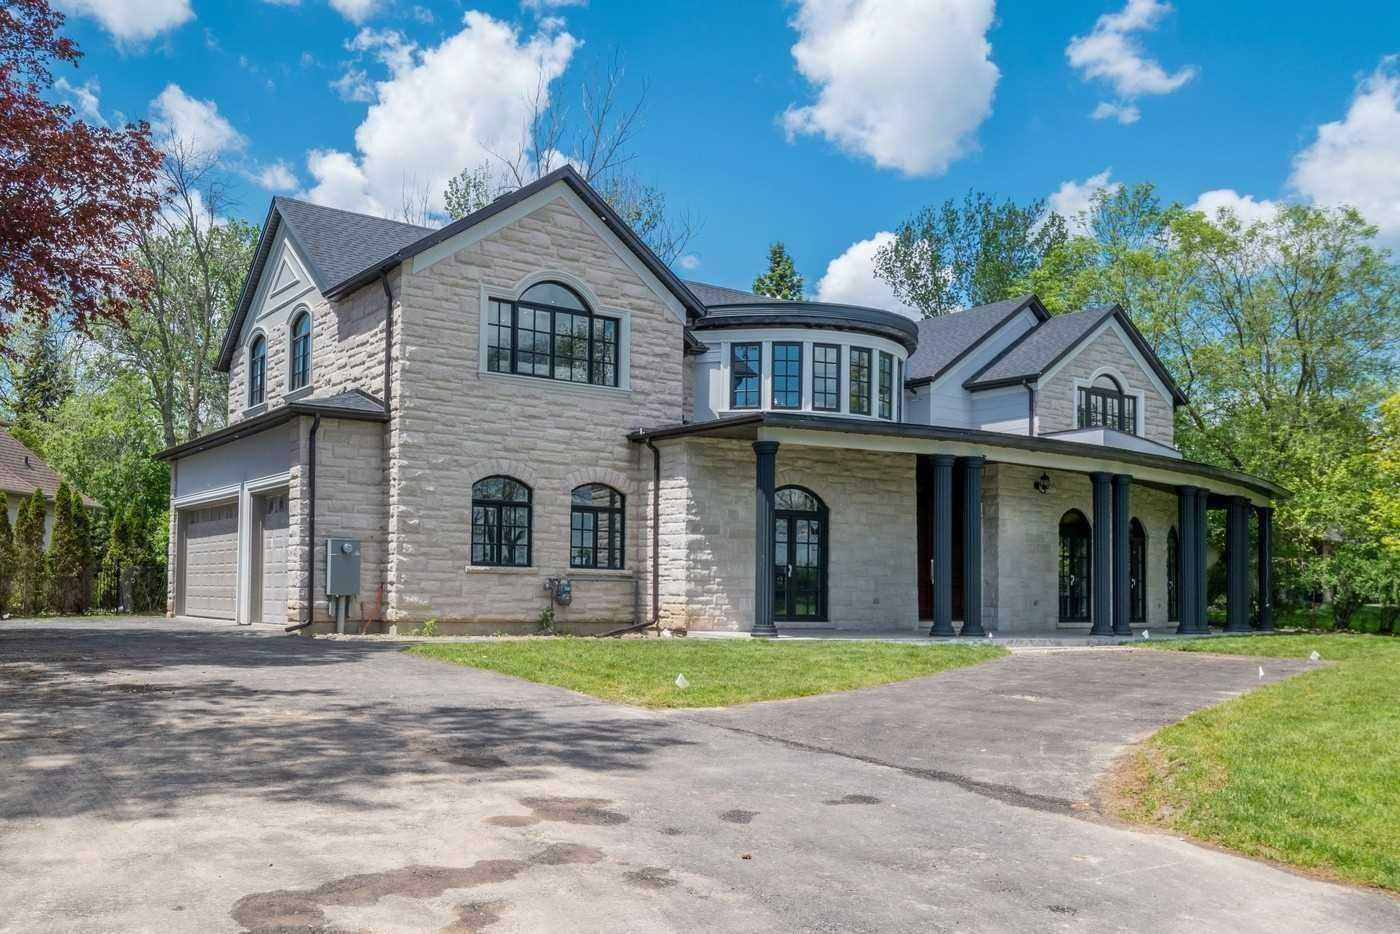 1539 Watersedge Rd, Mississauga, Ontario L5J1A6, 5 Bedrooms Bedrooms, 12 Rooms Rooms,9 BathroomsBathrooms,Detached,For Sale,Watersedge,W4954880